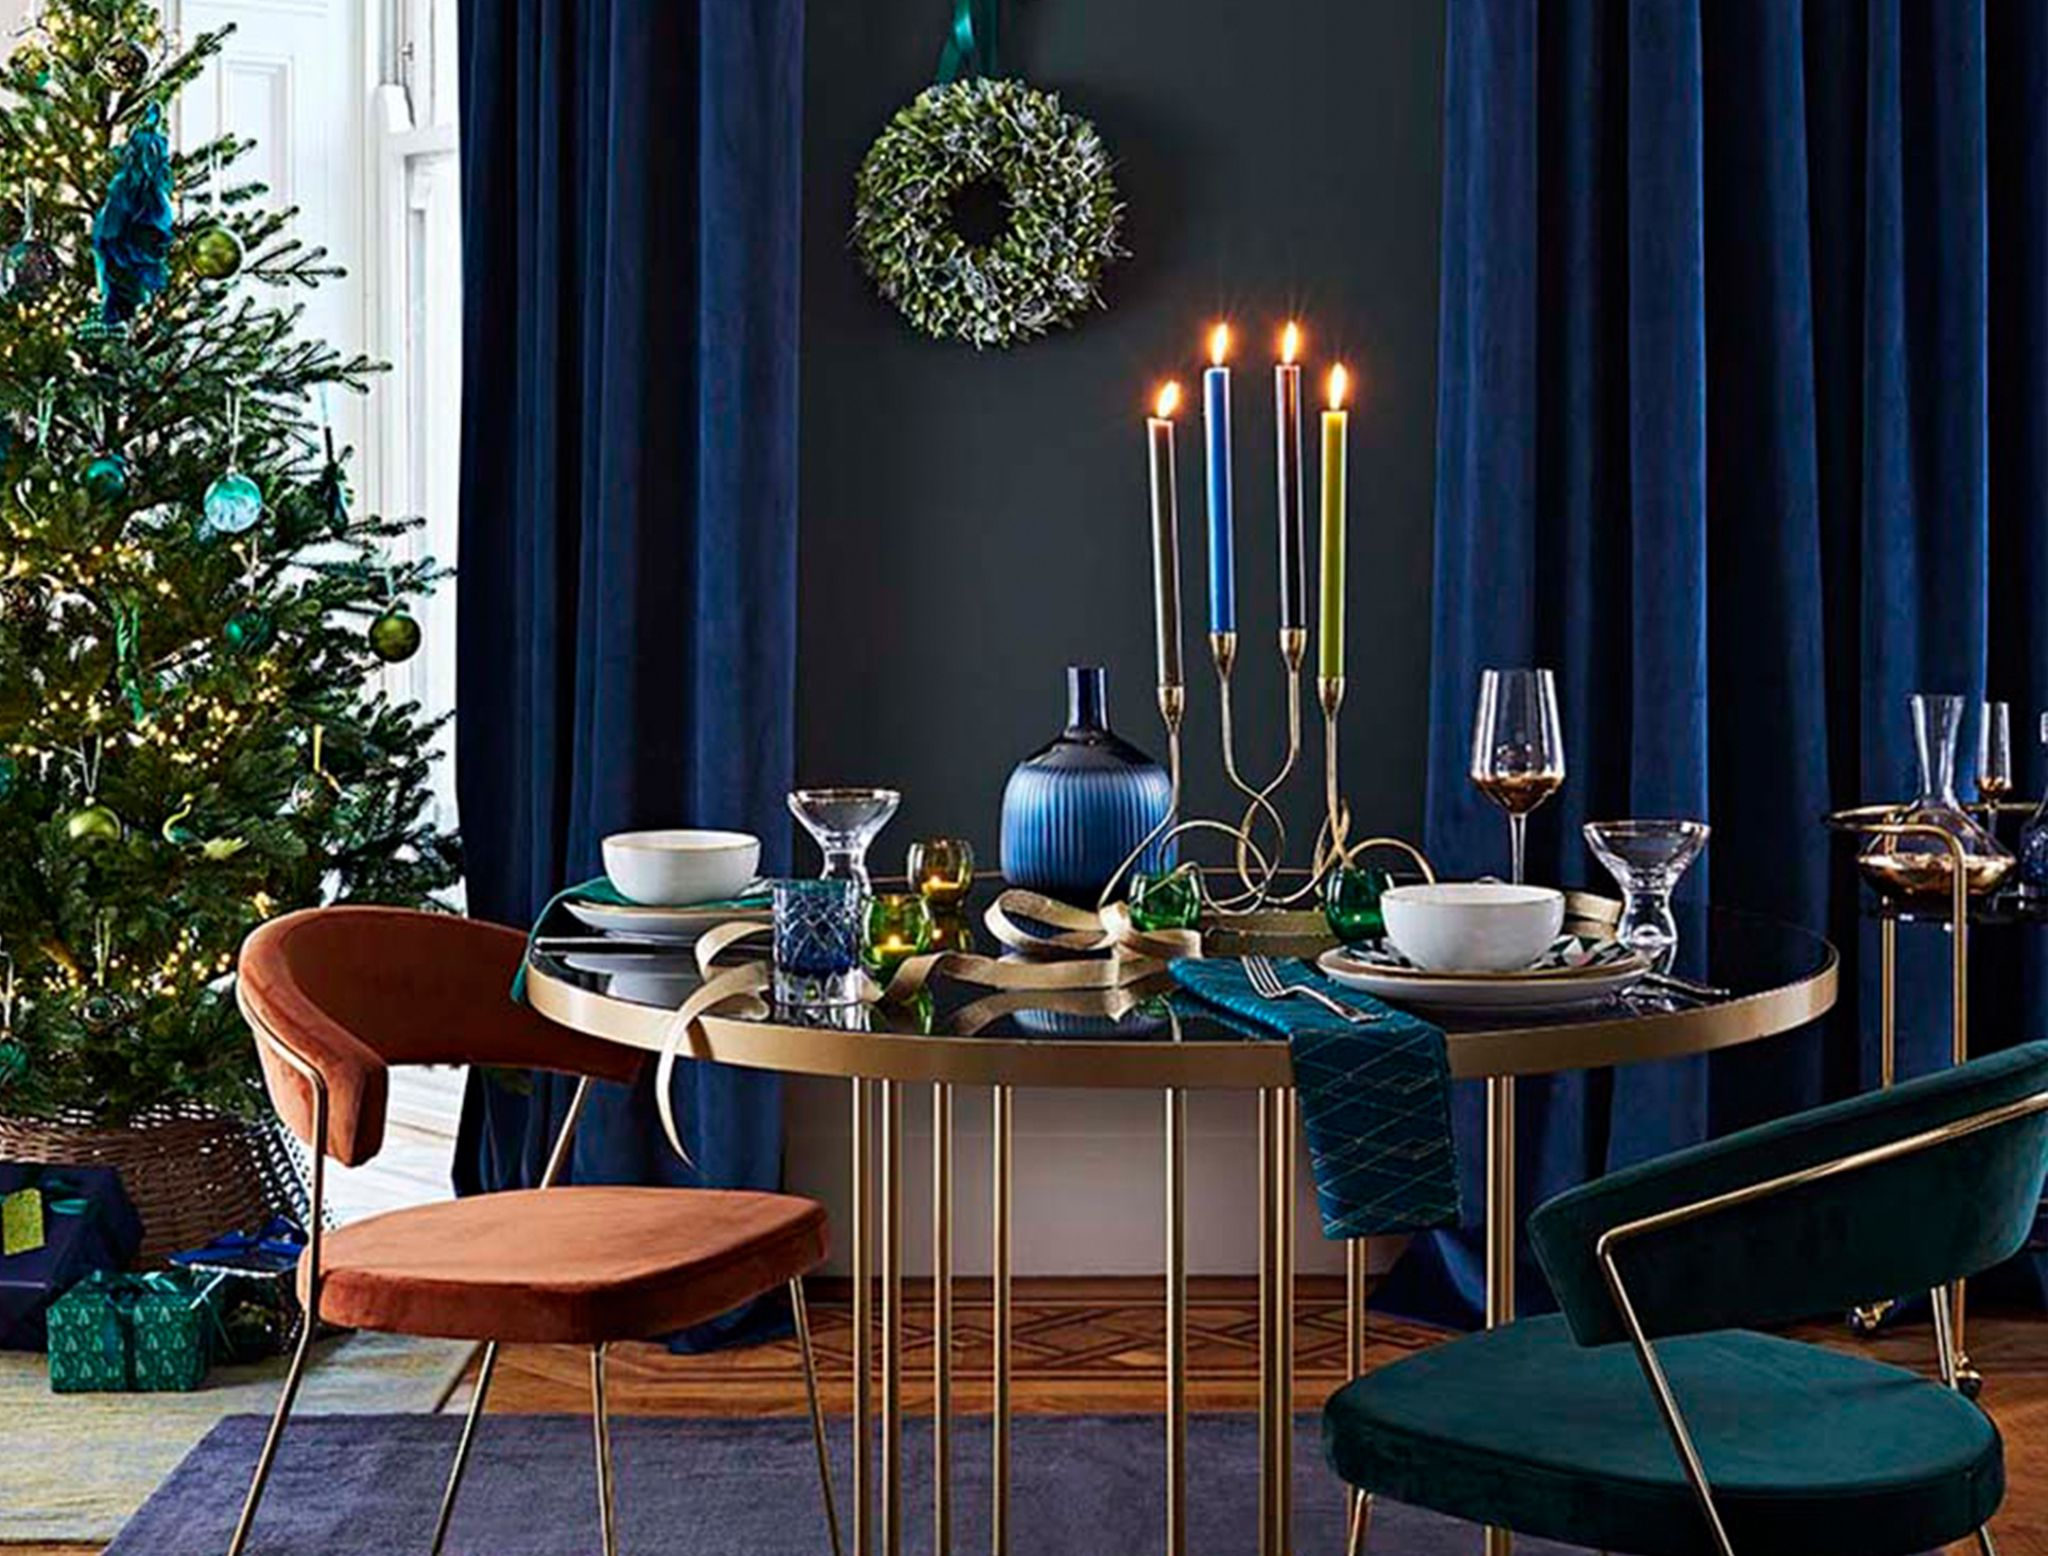 How to create a beautifully laid table for Christmas Day